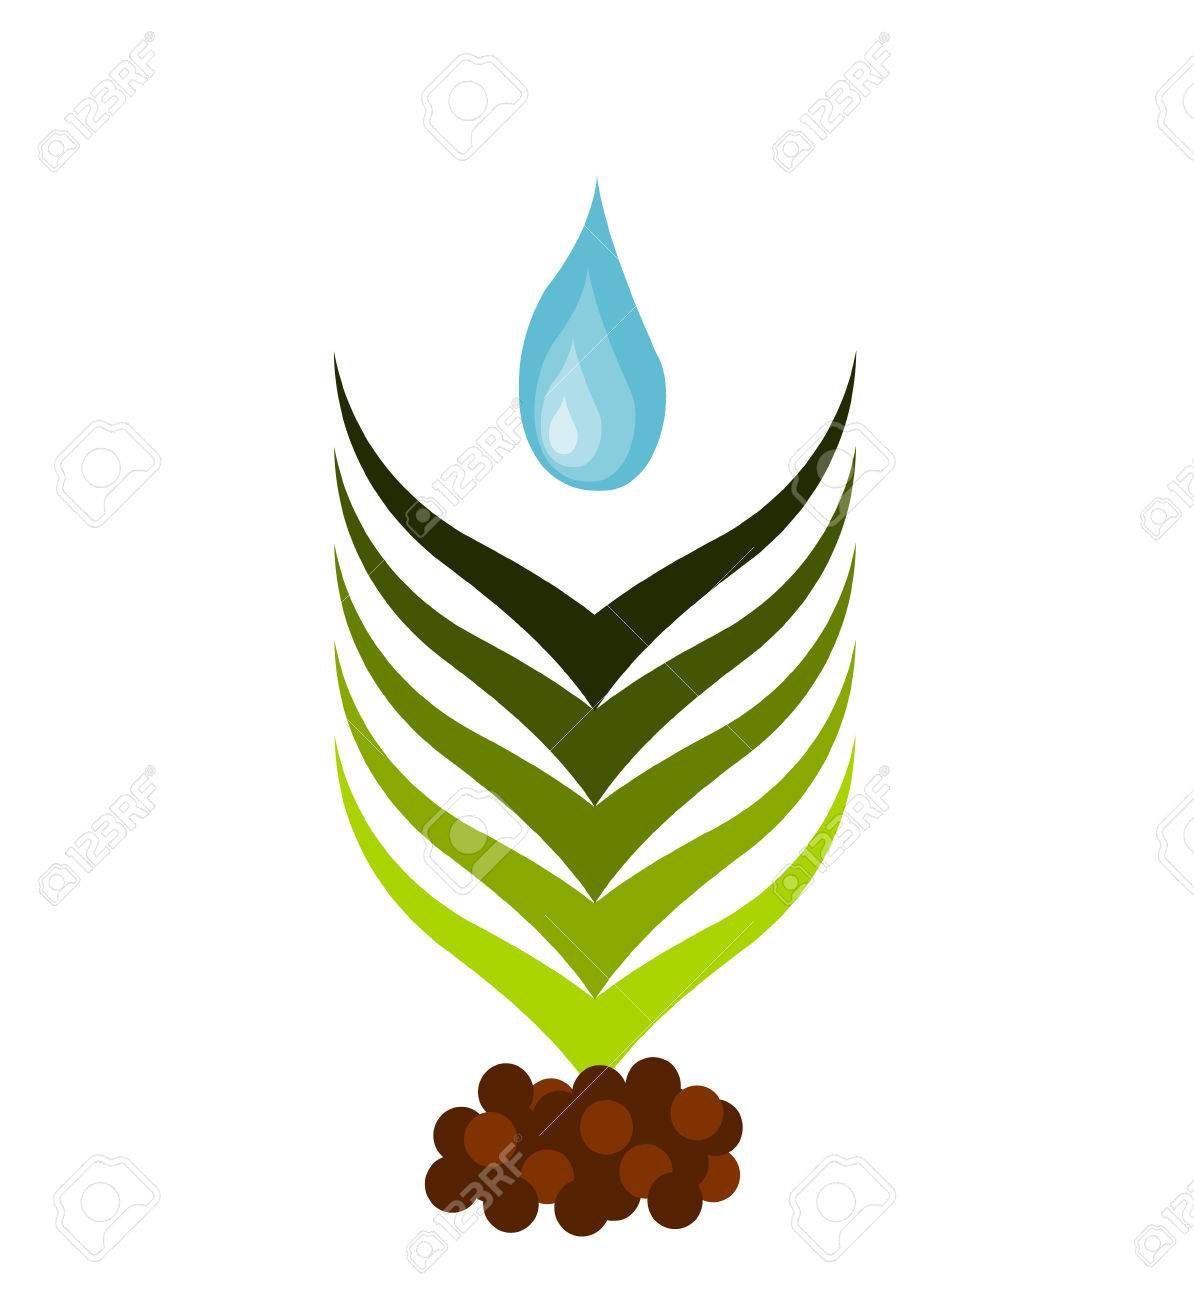 Plant growing from soil watered. Symbolic illustration Stock Vector - 8556099